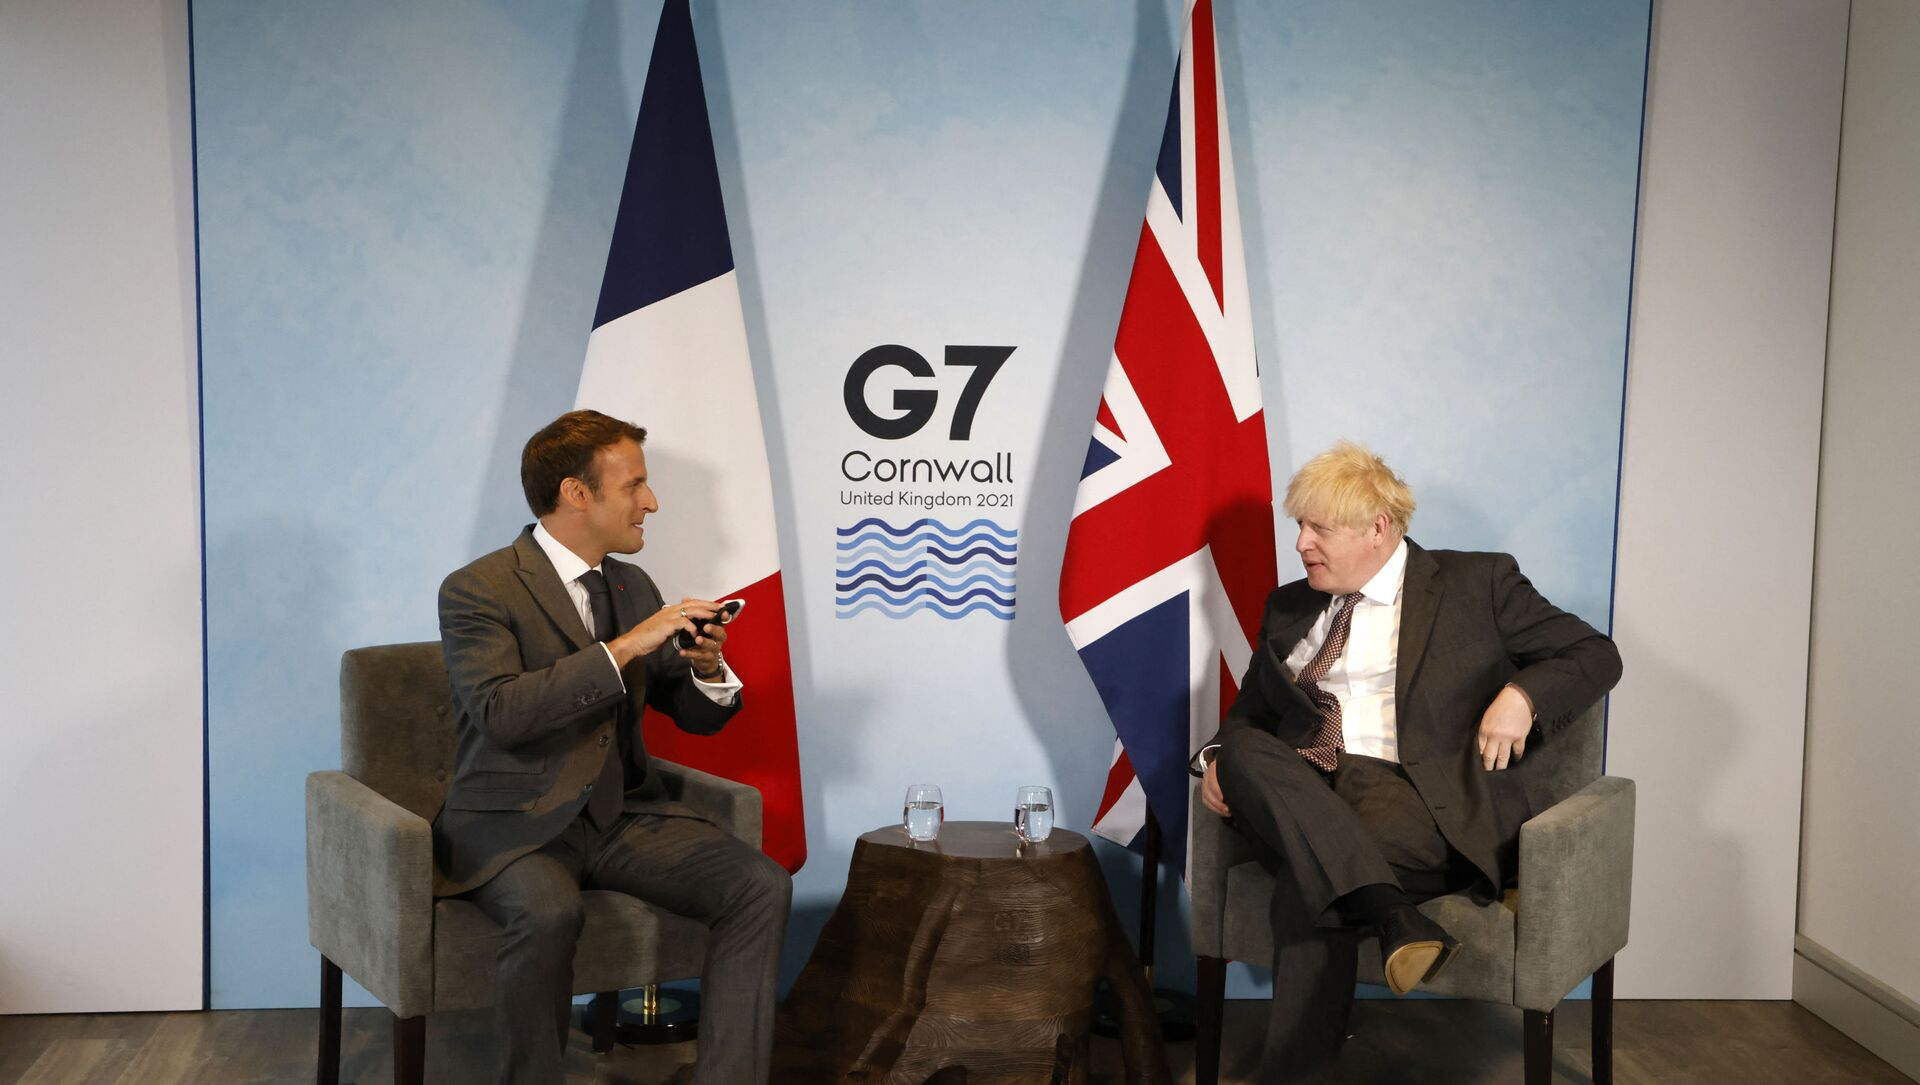 Britain's Prime Minister Boris Johnson and France's President Emmanuel Macron take part in a bilateral meeting during the G7 summit in Carbis bay, Cornwall on June 12, 2021.  - Sputnik International, 1920, 13.06.2021